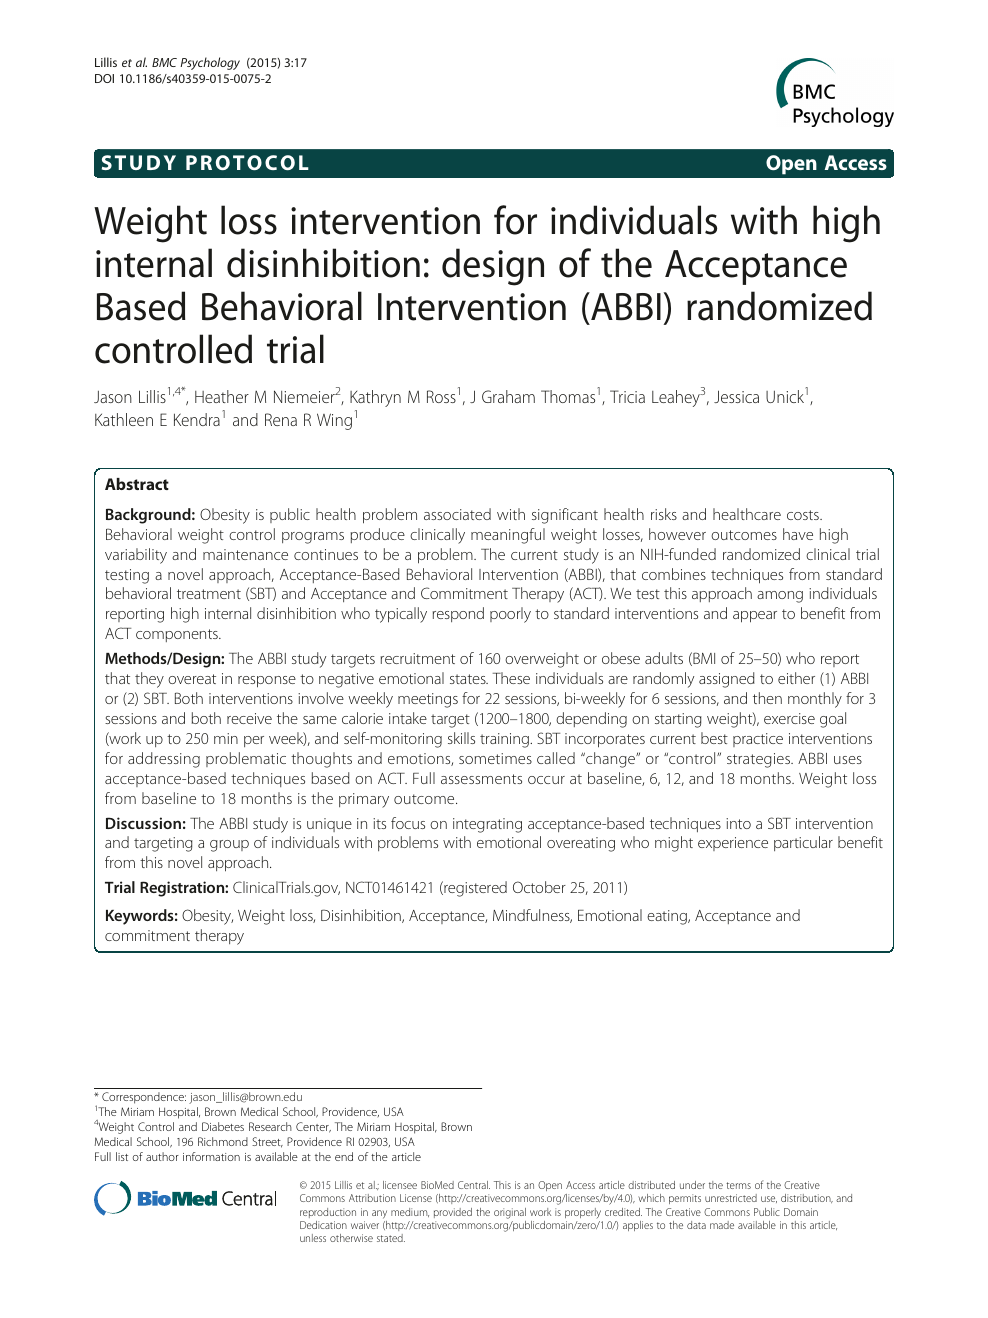 Weight loss intervention for individuals with high internal